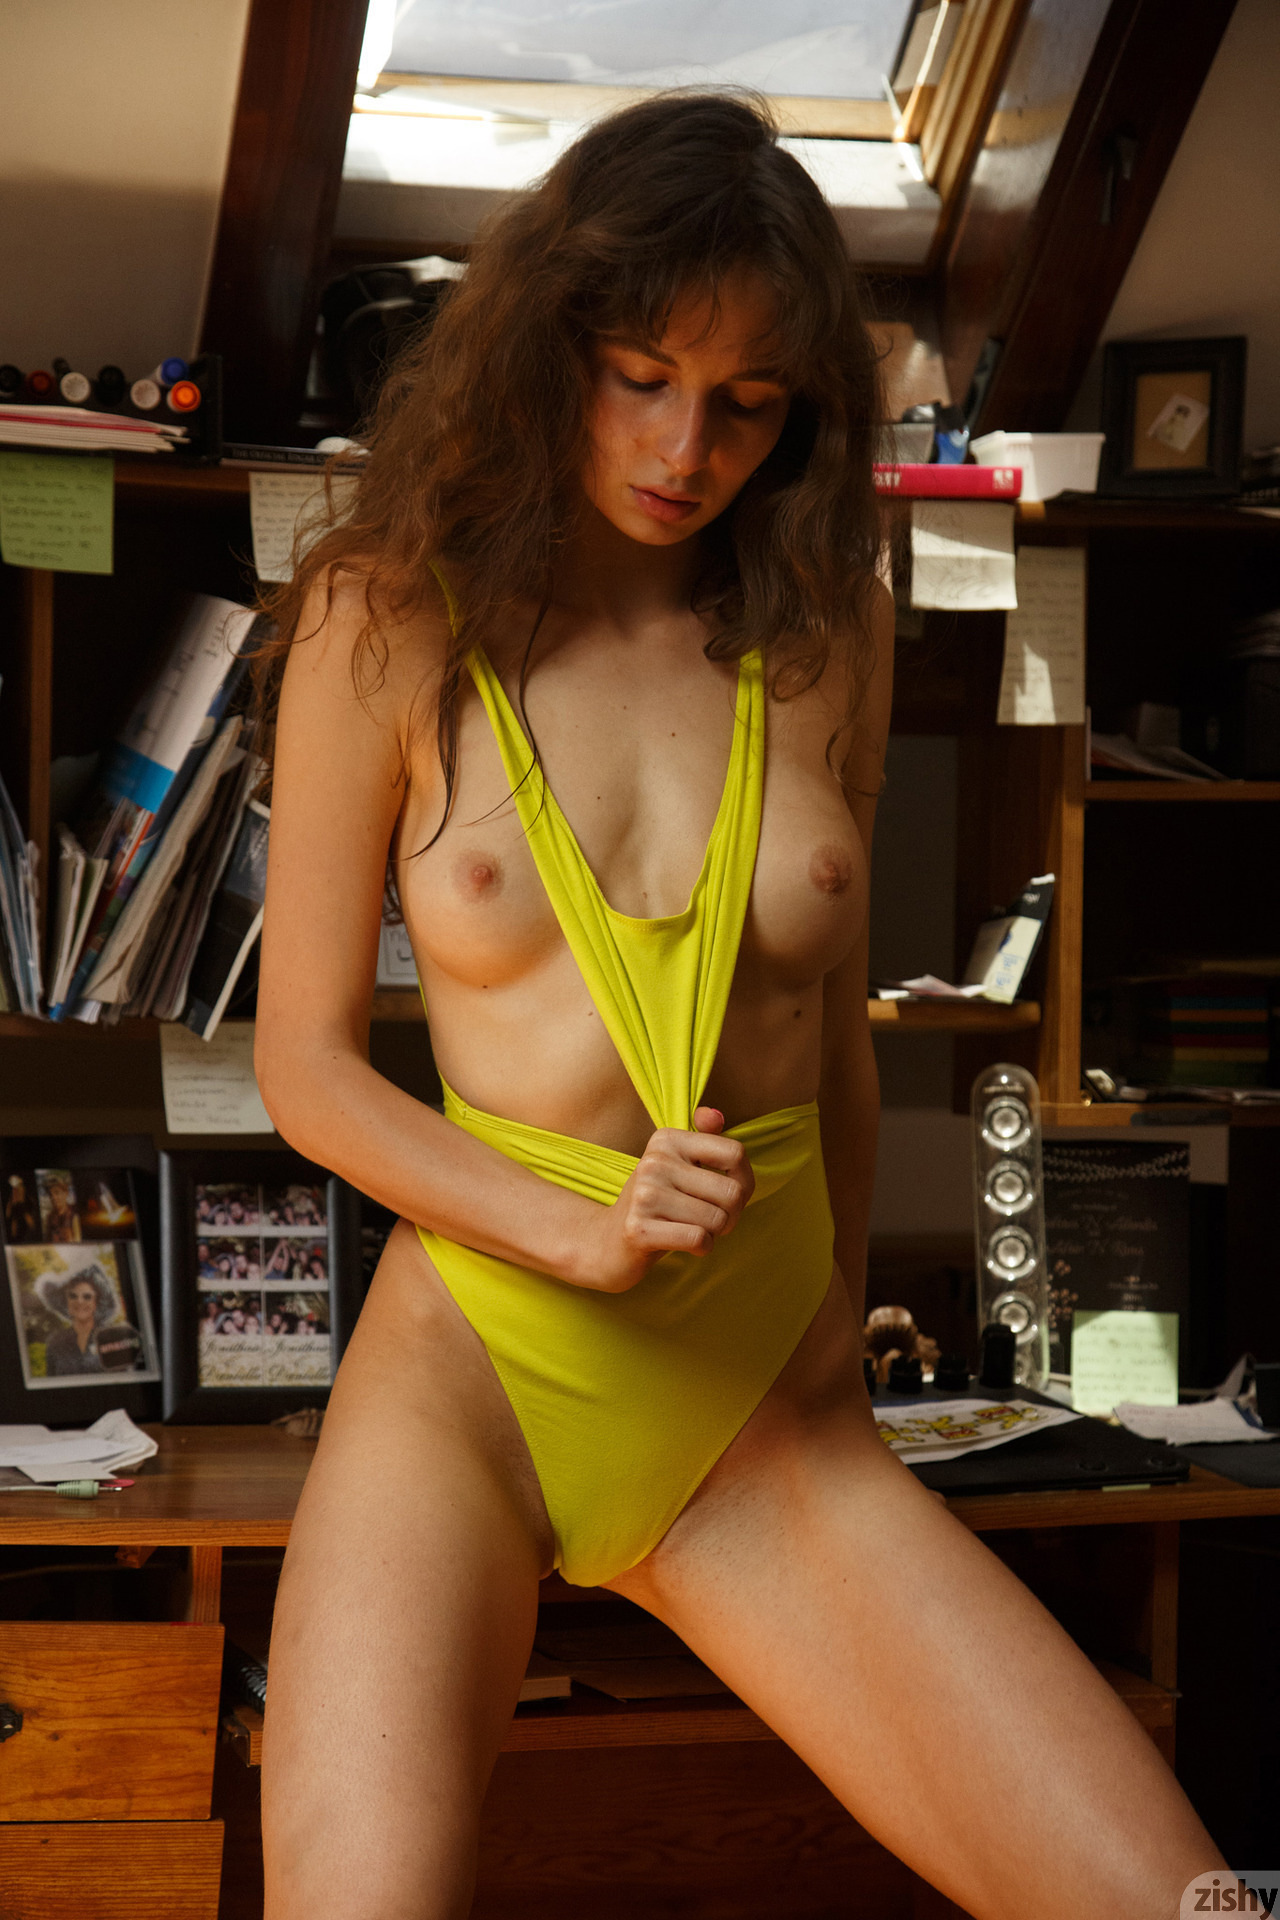 Zishy Vivi Kuanas Topless  GirlzNationcom